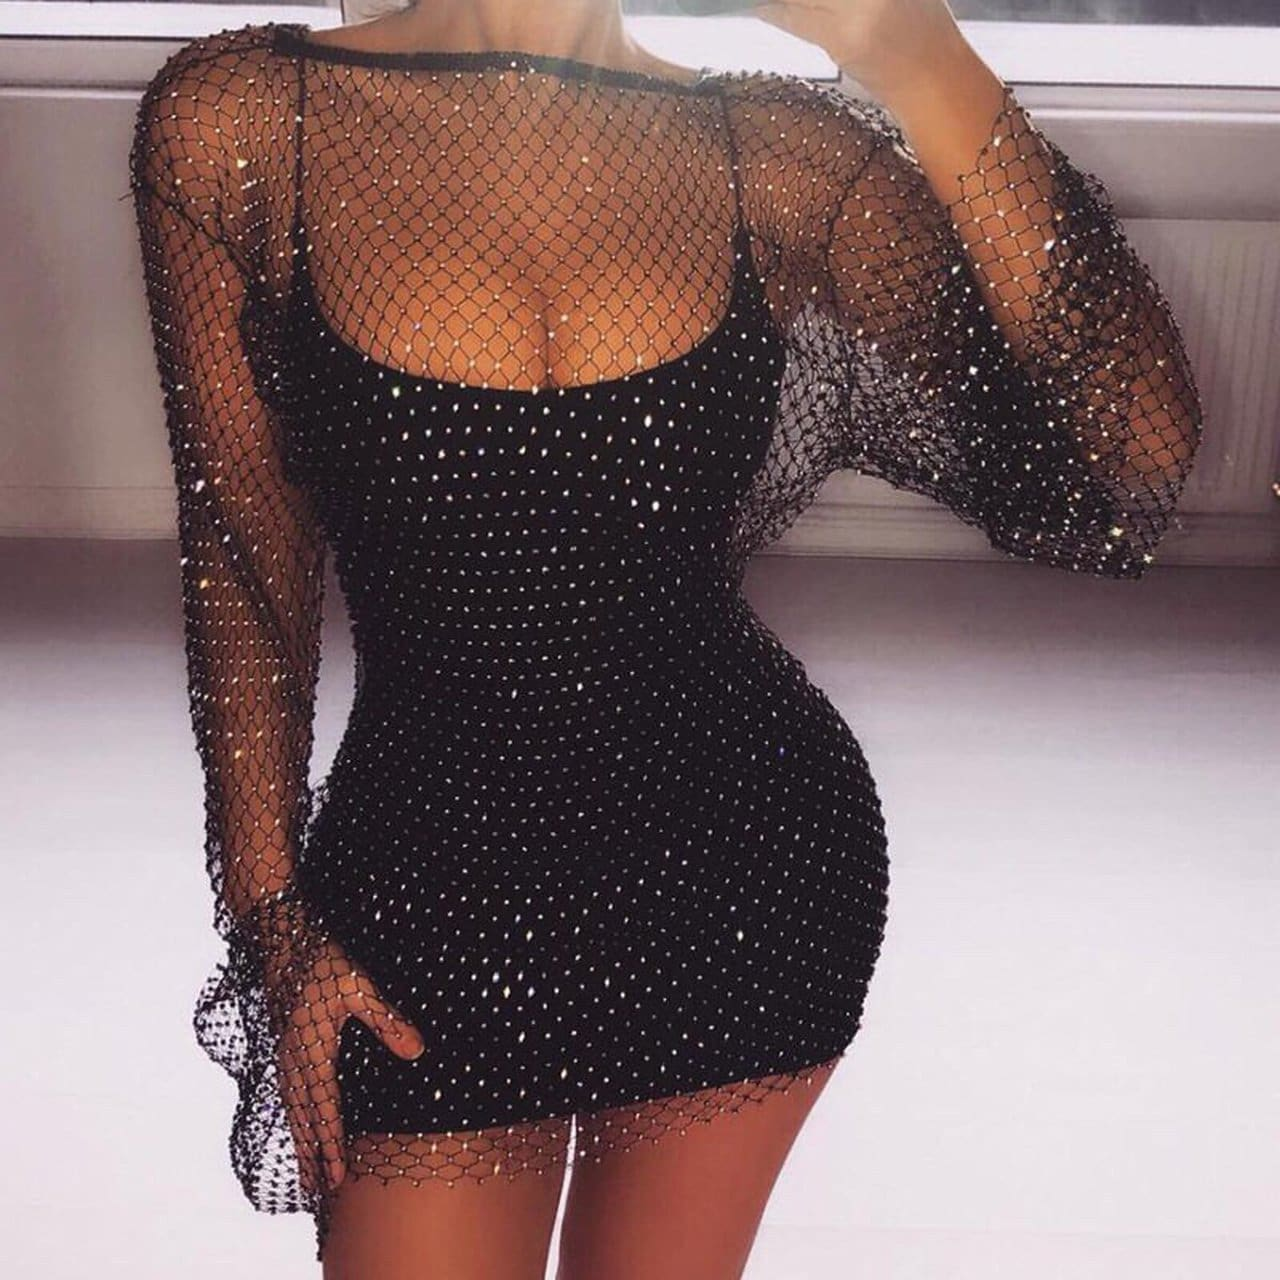 Hollow Out Diamond Party Festival Mini Dress - Black / One Size